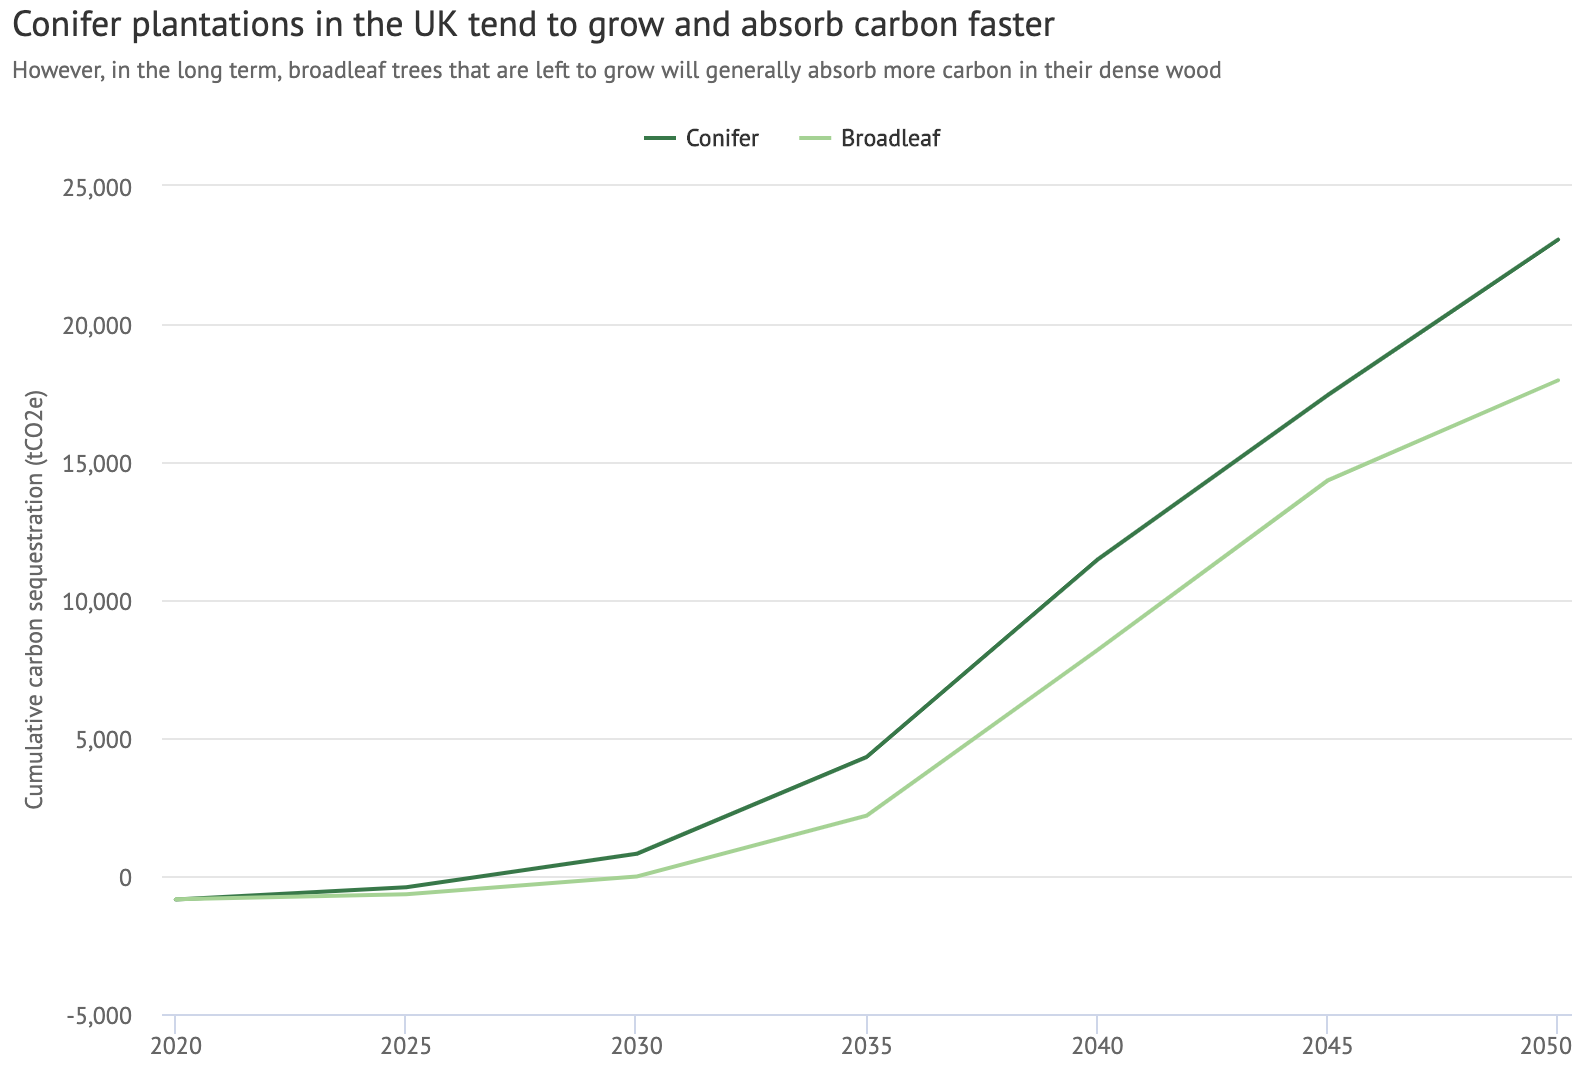 Carbon sequestration up until the 2050 net-zero deadline in a conifer (dark) and broadleaf (light) stand of trees. This chart is based on 50-hectare plantations, one made up of conifers planted to the UK Forestry Standard (75% sitka spruce at yield class 20, 10% Douglas fir and Scots pine, 5% native broadleaves, 10% open space), and one a native broadleaf scheme with yield class 6 (90% broadleaves, 10% open space). Both assume no thinning or felling has taken place.